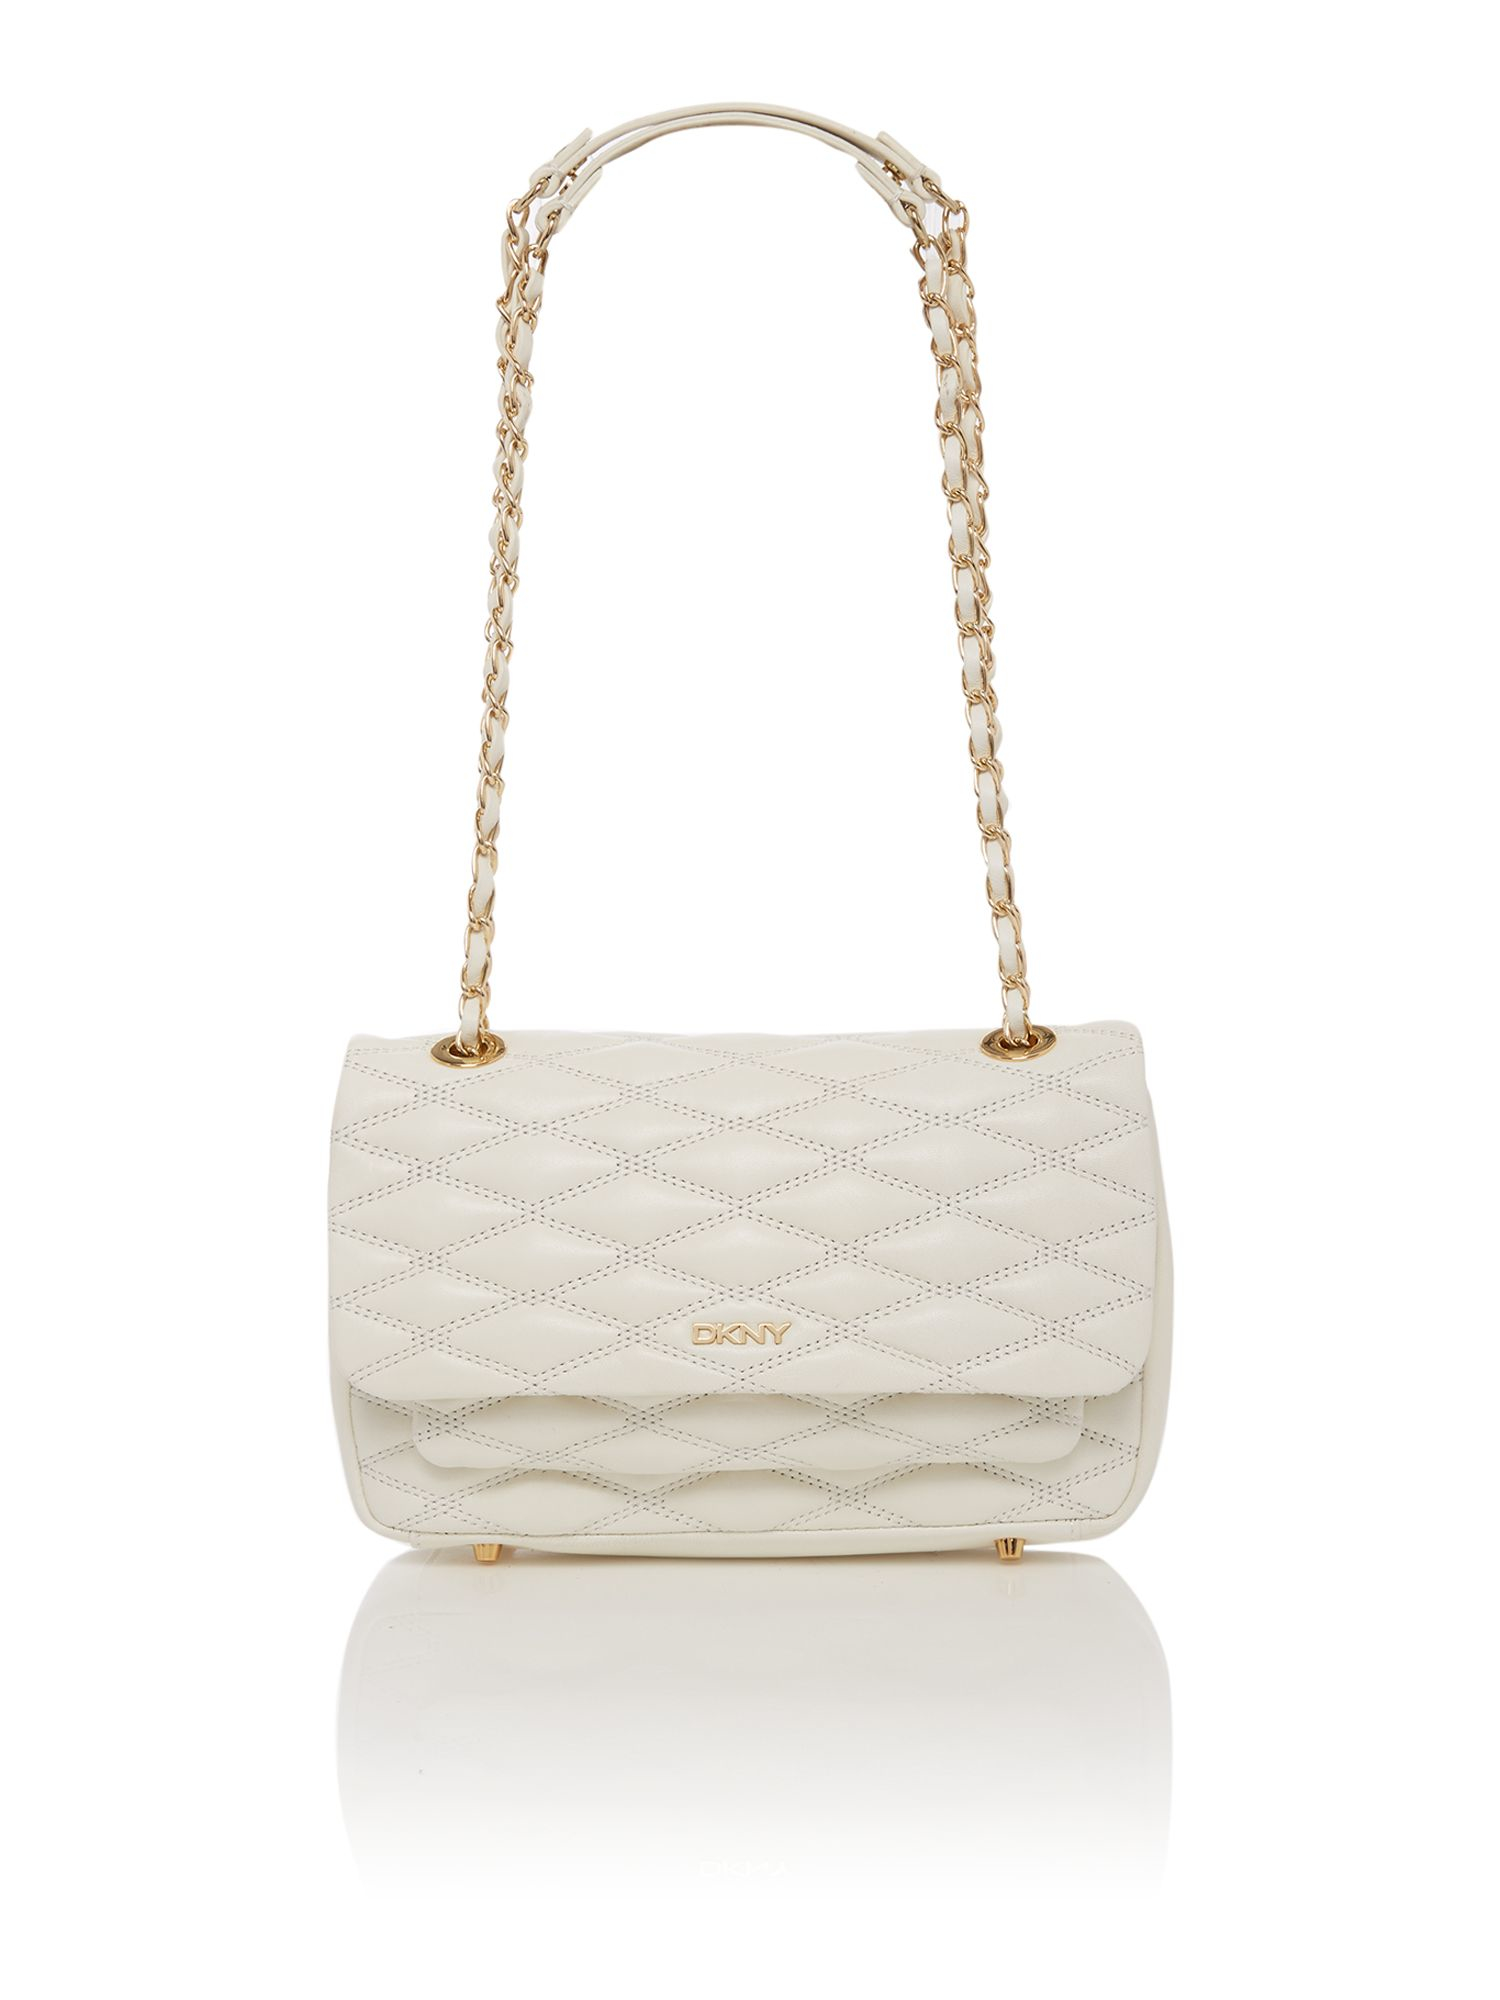 Dkny Quilted White Tan Flap Over Shoulder Bag in White | Lyst